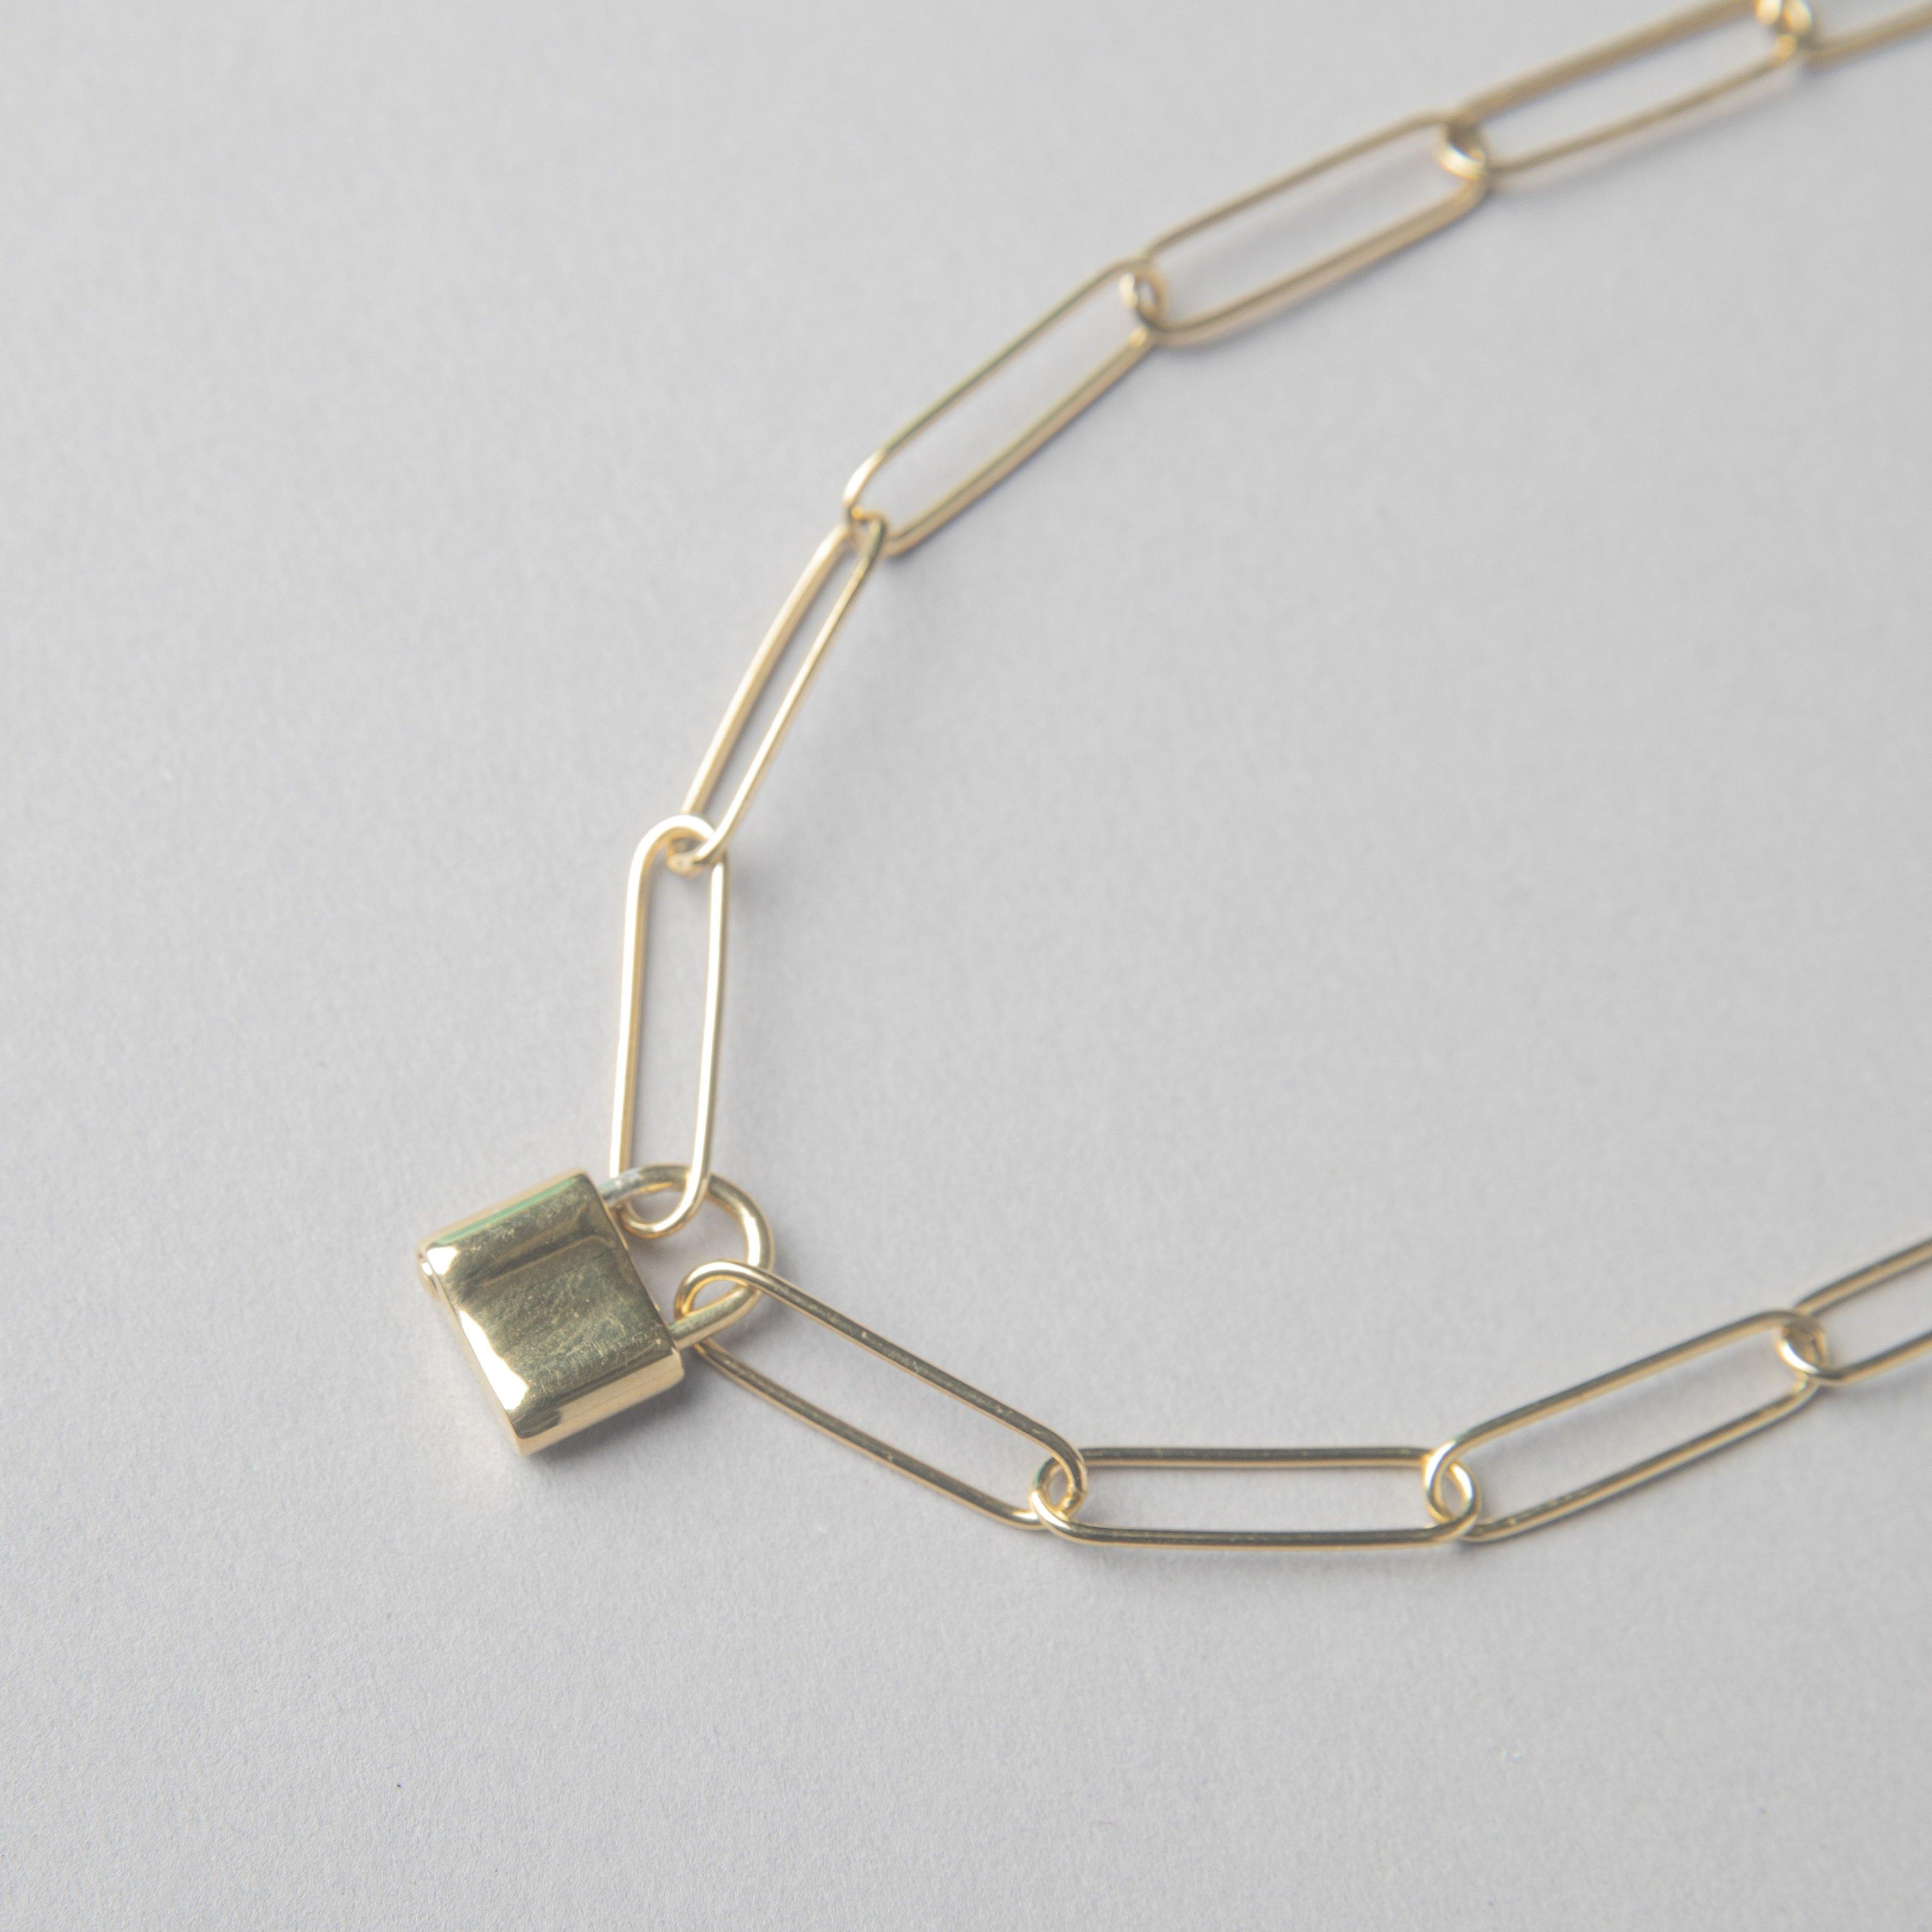 ROUND LINK PAPER CLIP NECKLACE WITH PADLOCK - bobbie carr